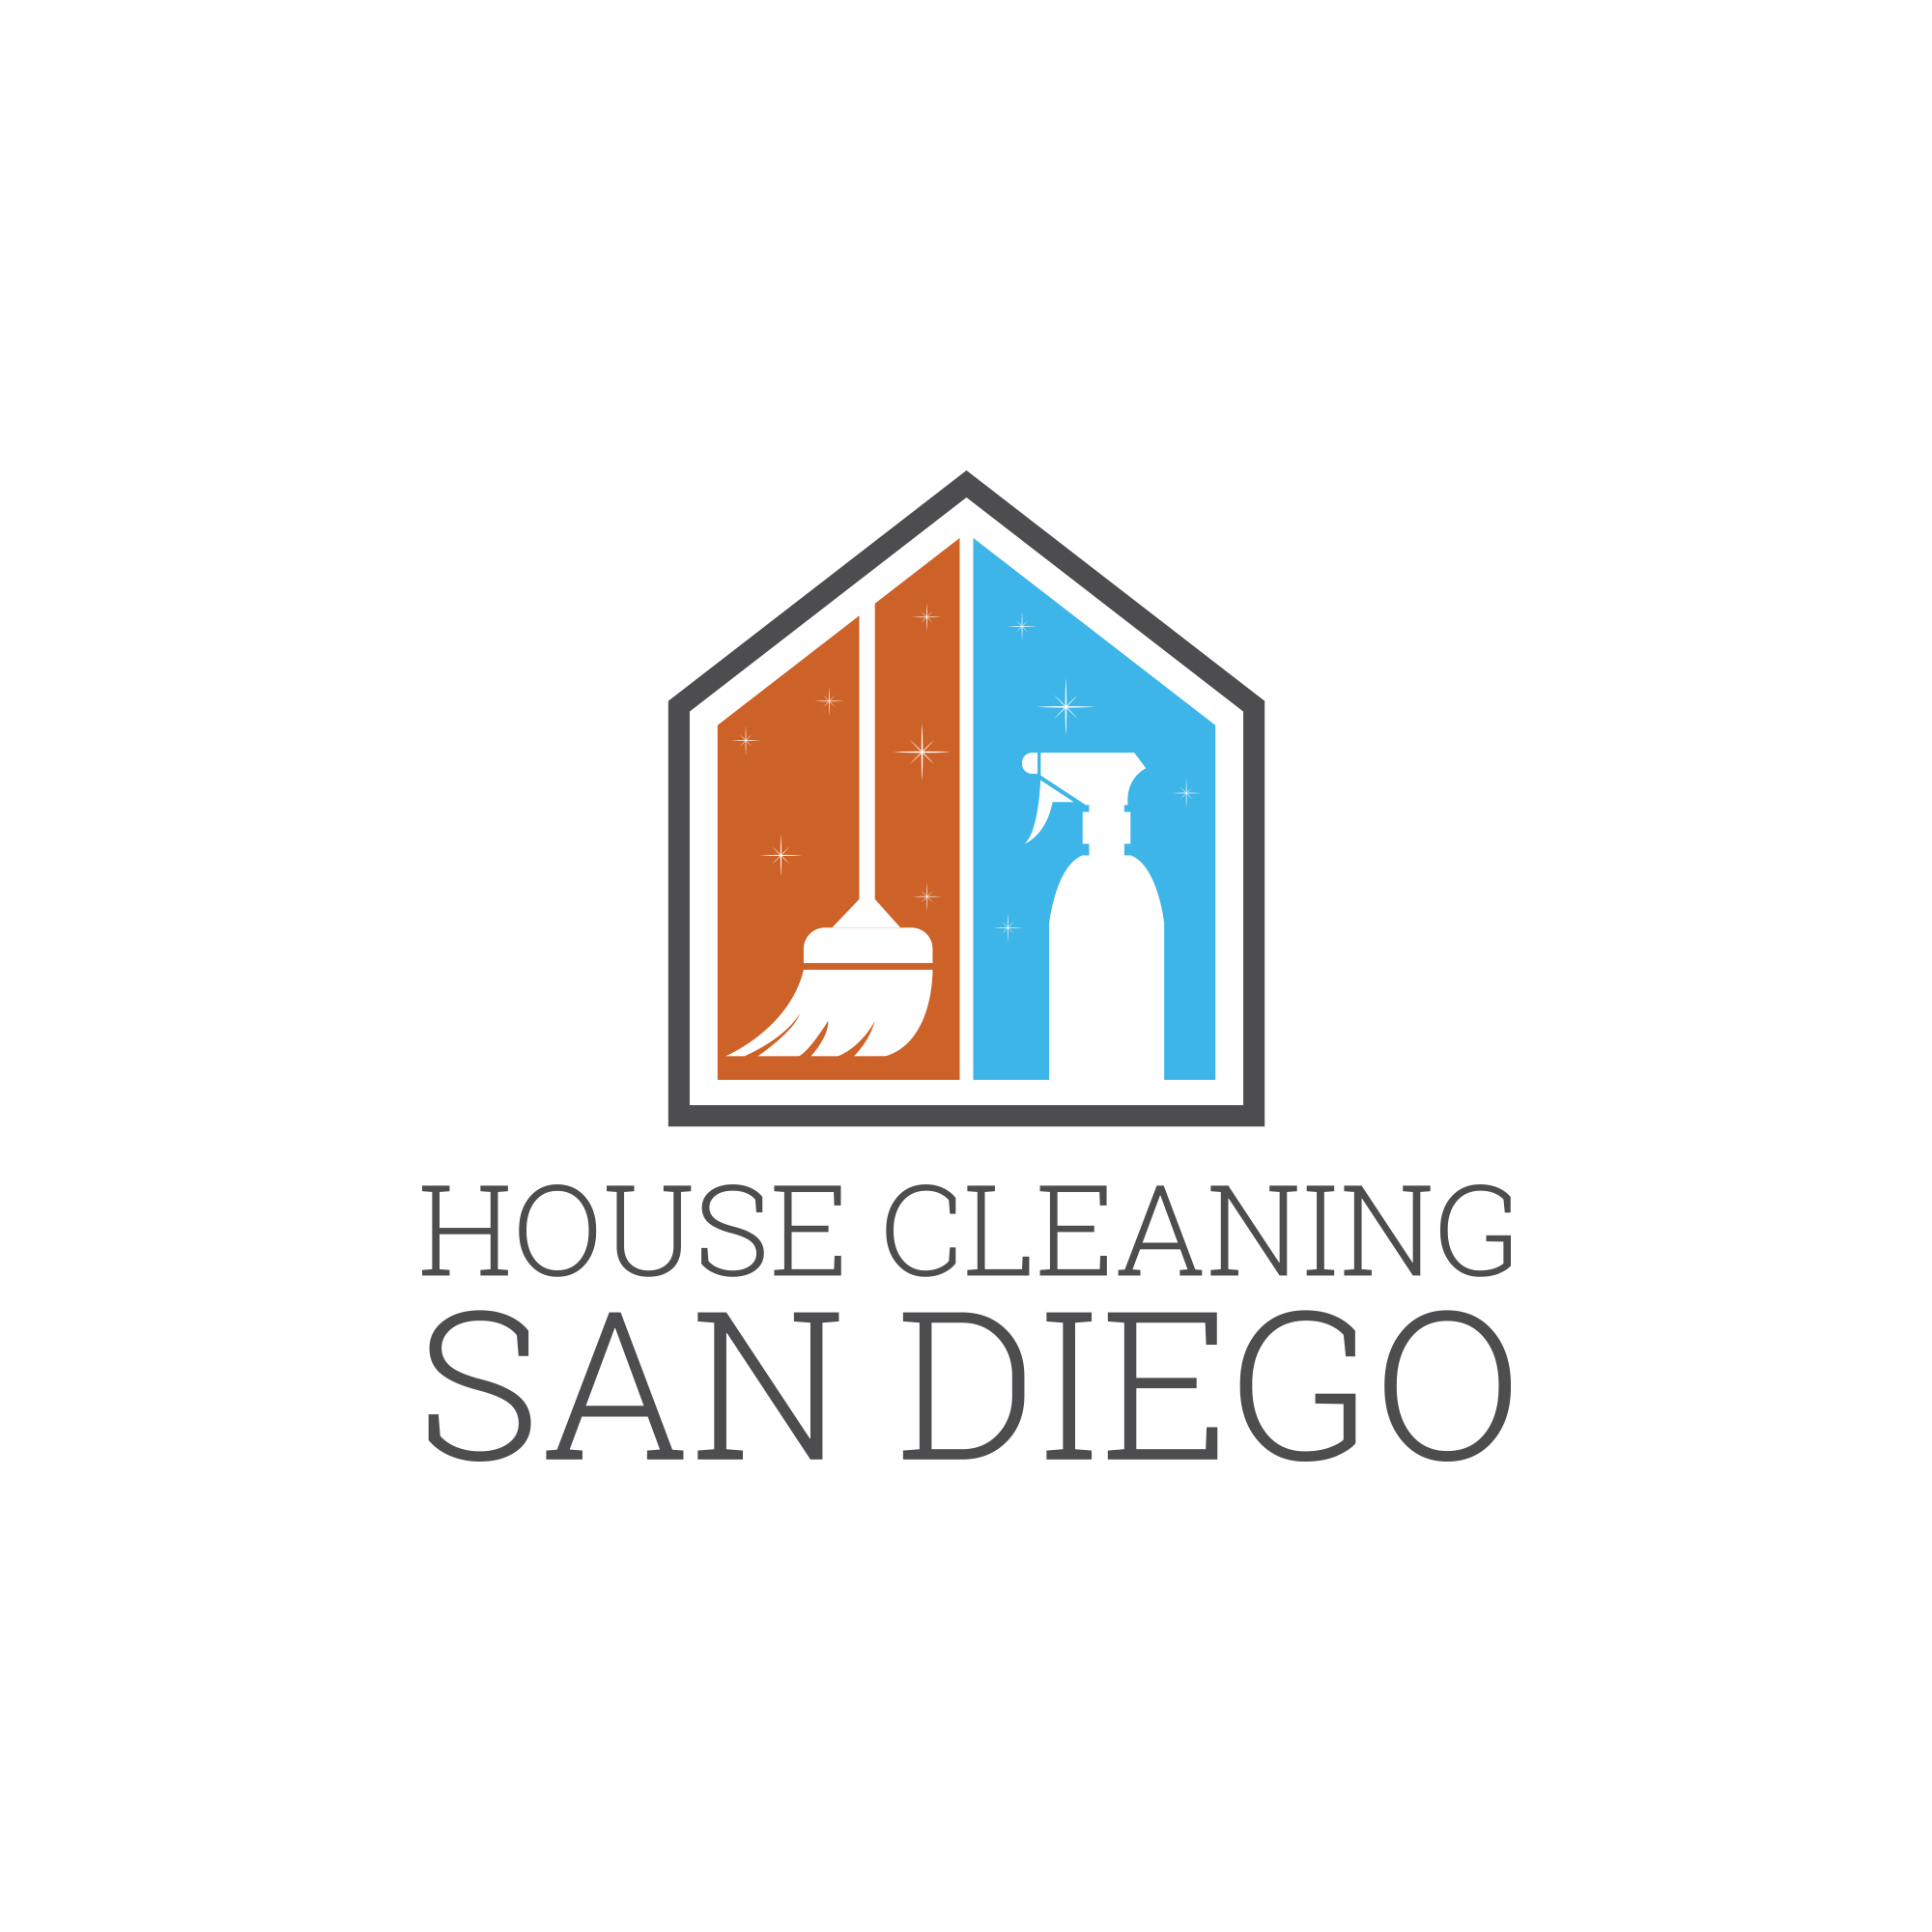 House Cleaning San Diego logo